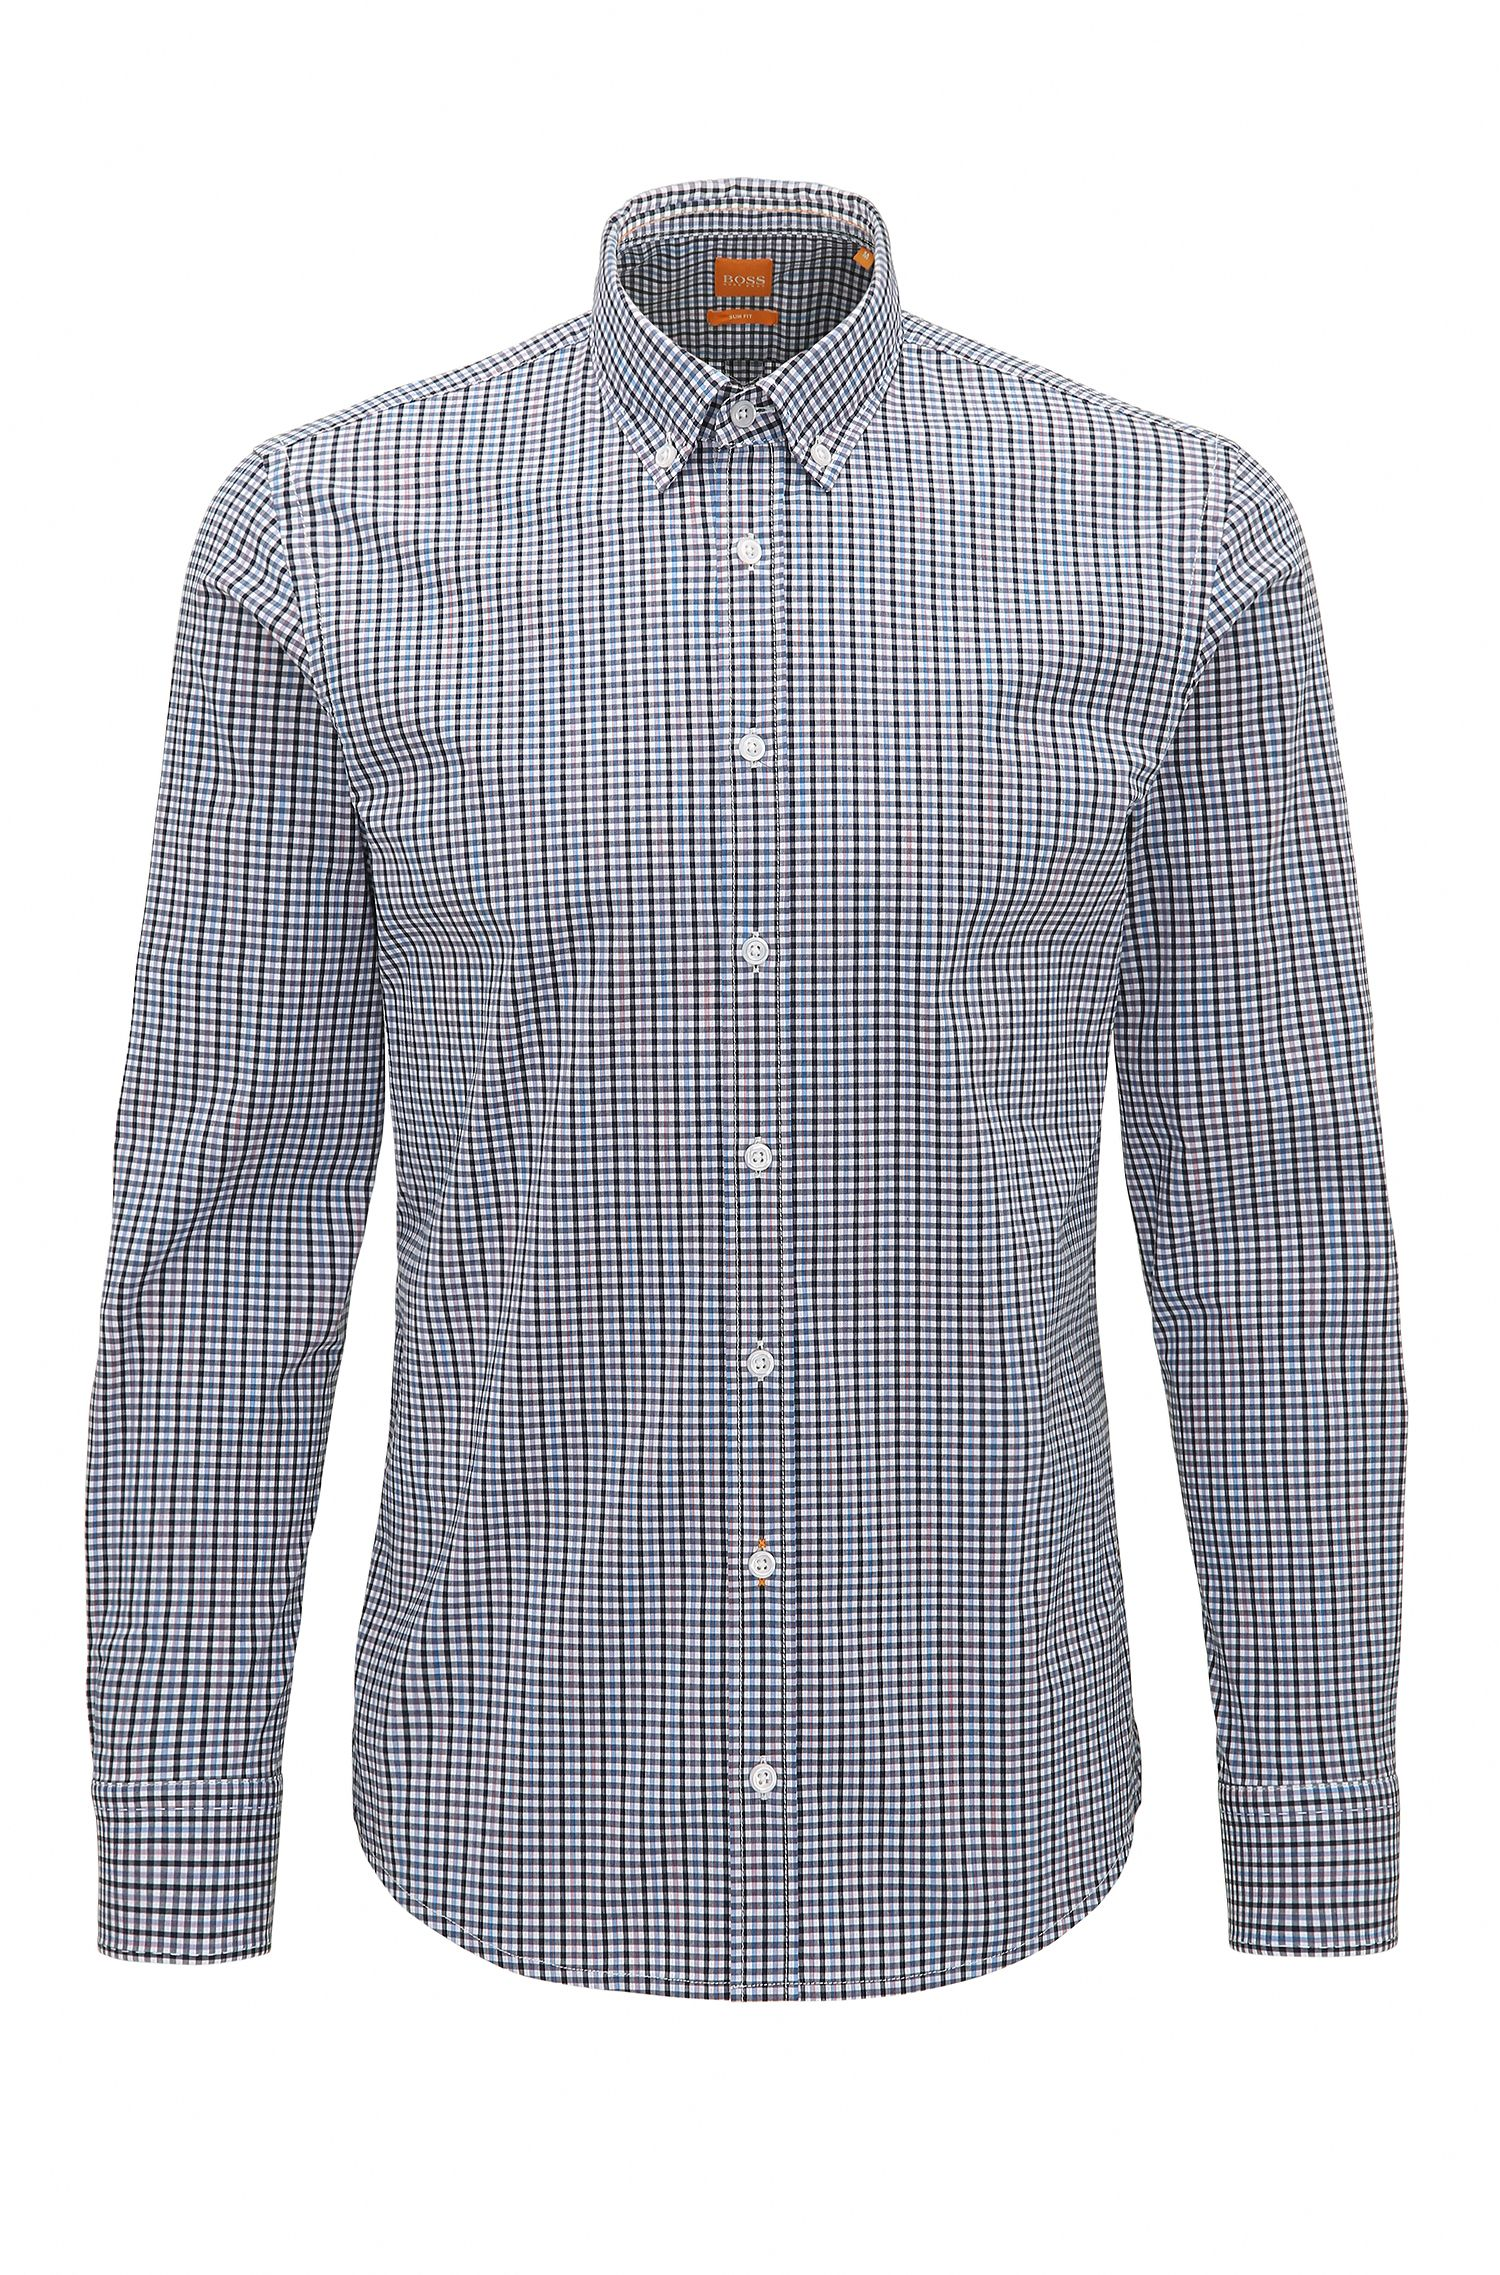 Plaid Stretch Cotton Button-Down Shirt with Stretch Tailoring, Slim Fit | Epreppy